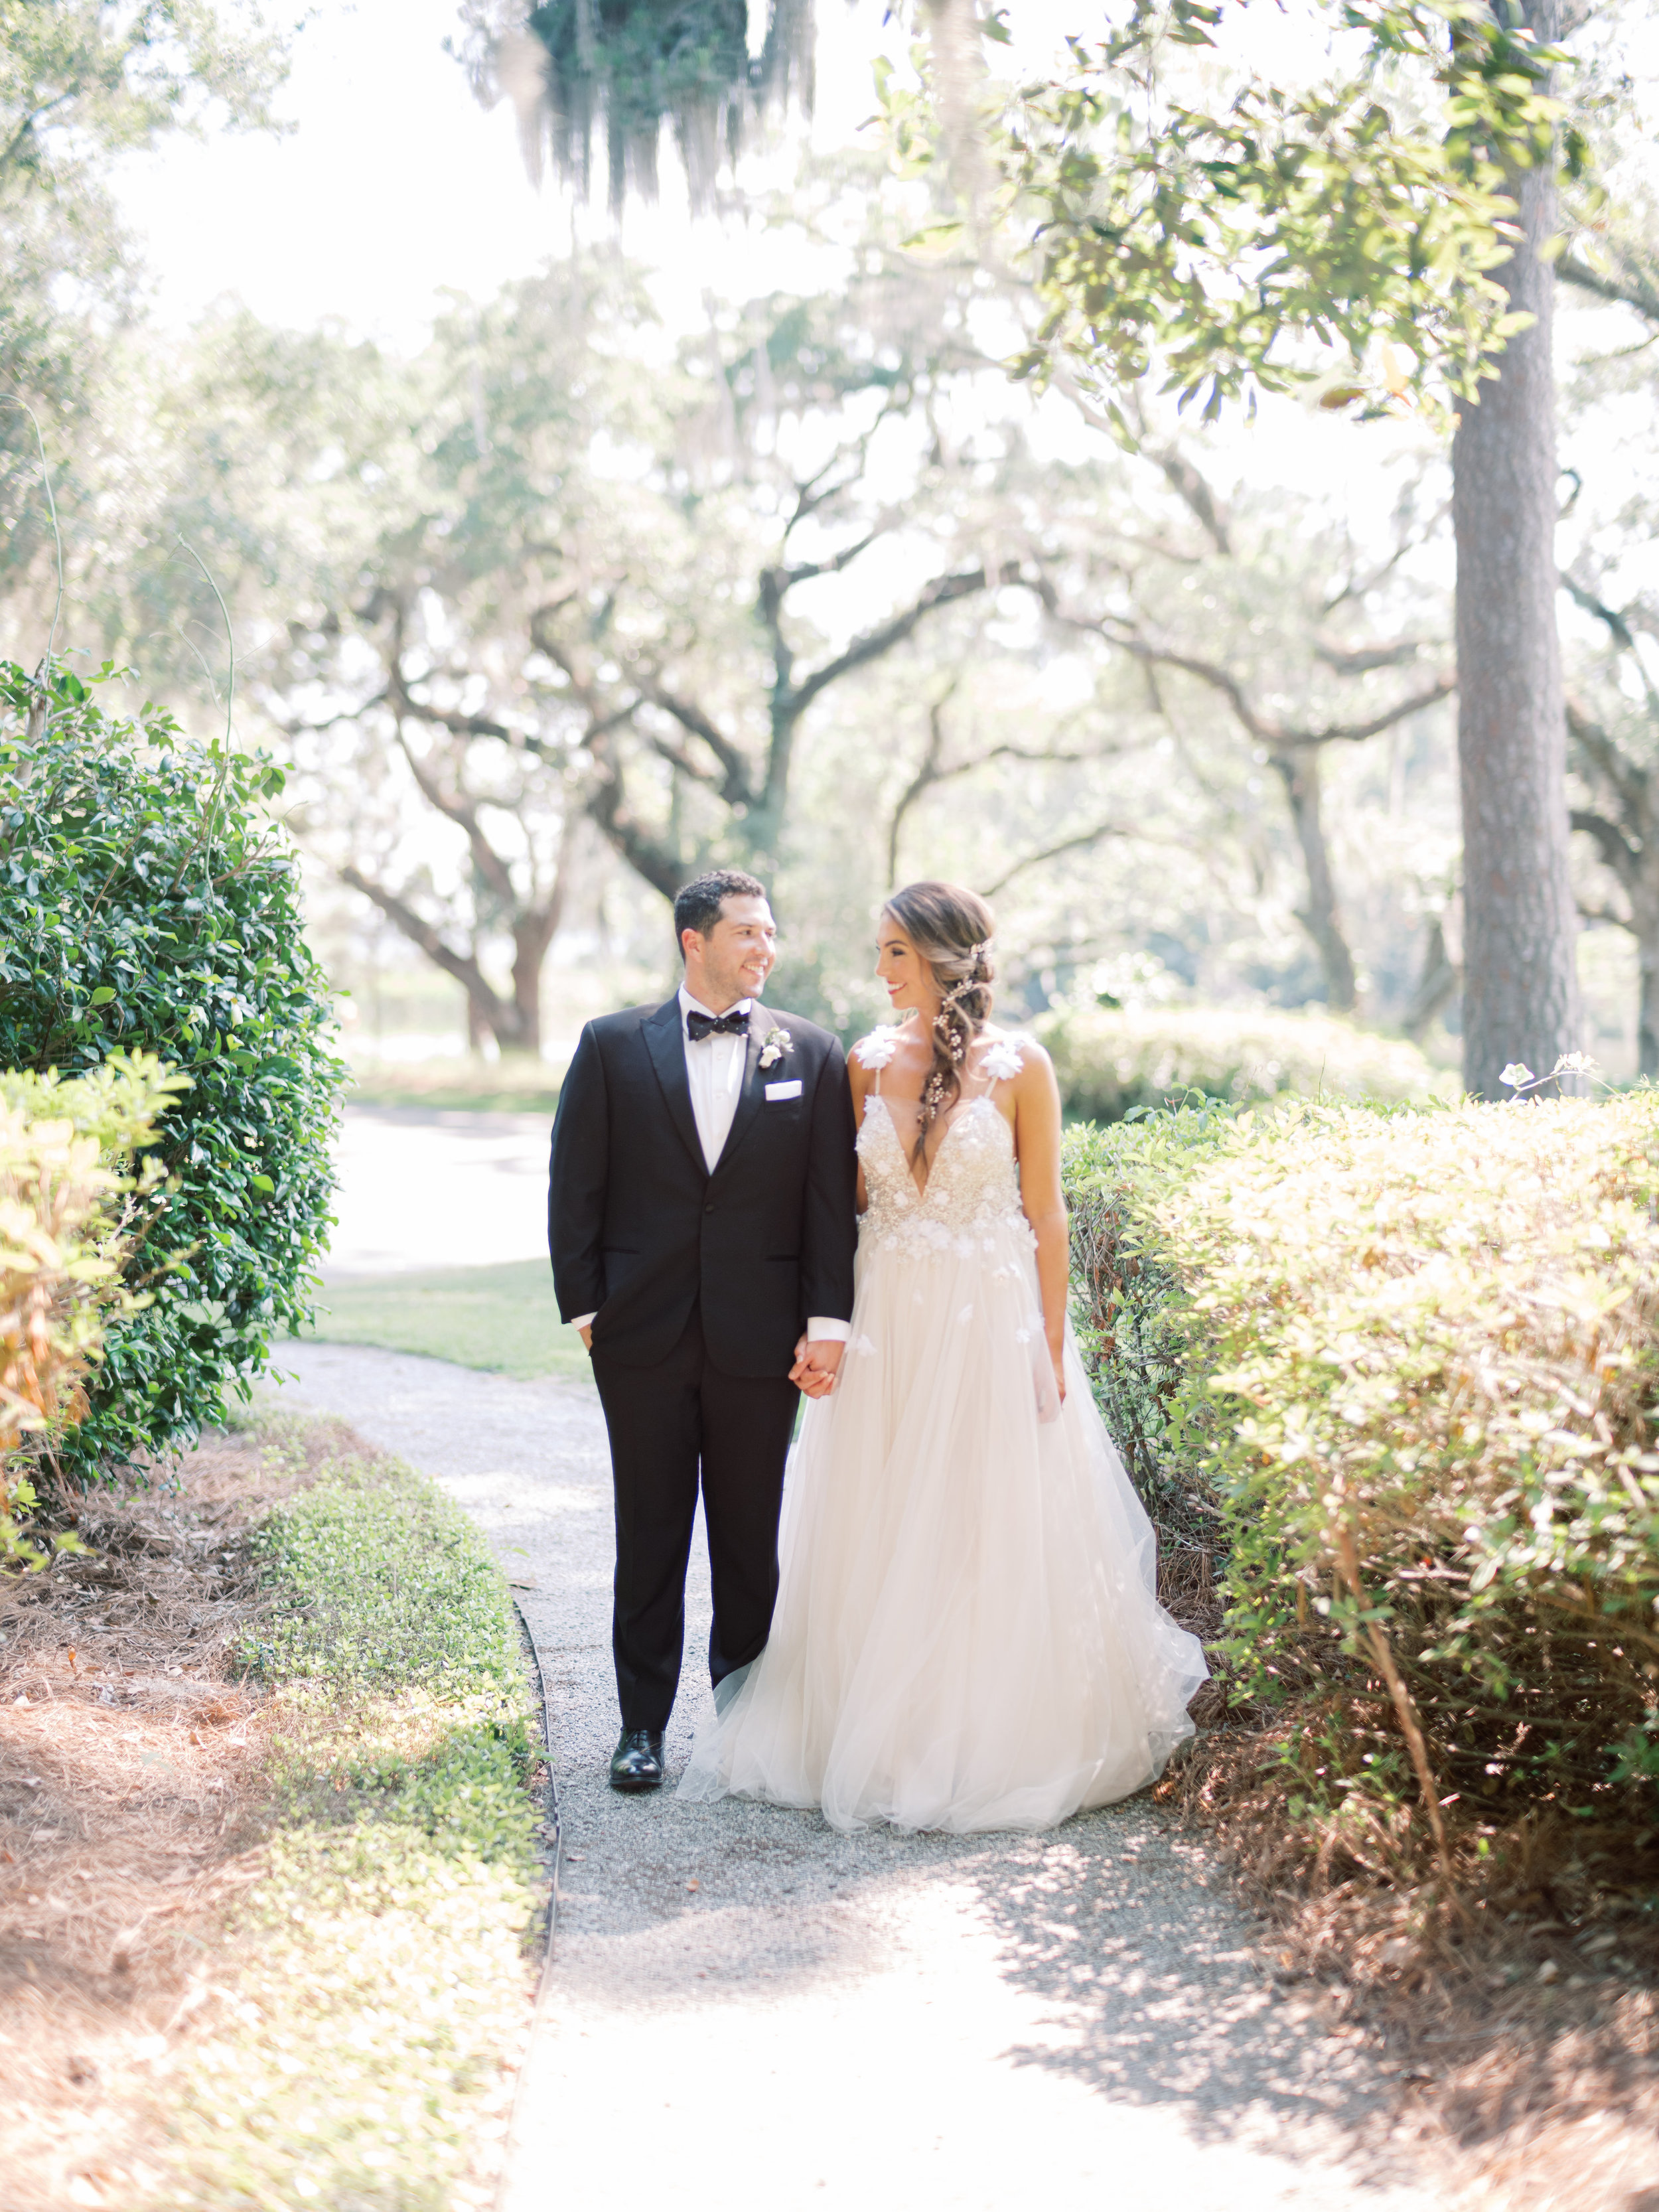 Kirstin & Nick's Oldfield Club wedding  ll  Hilton Head wedding photographer